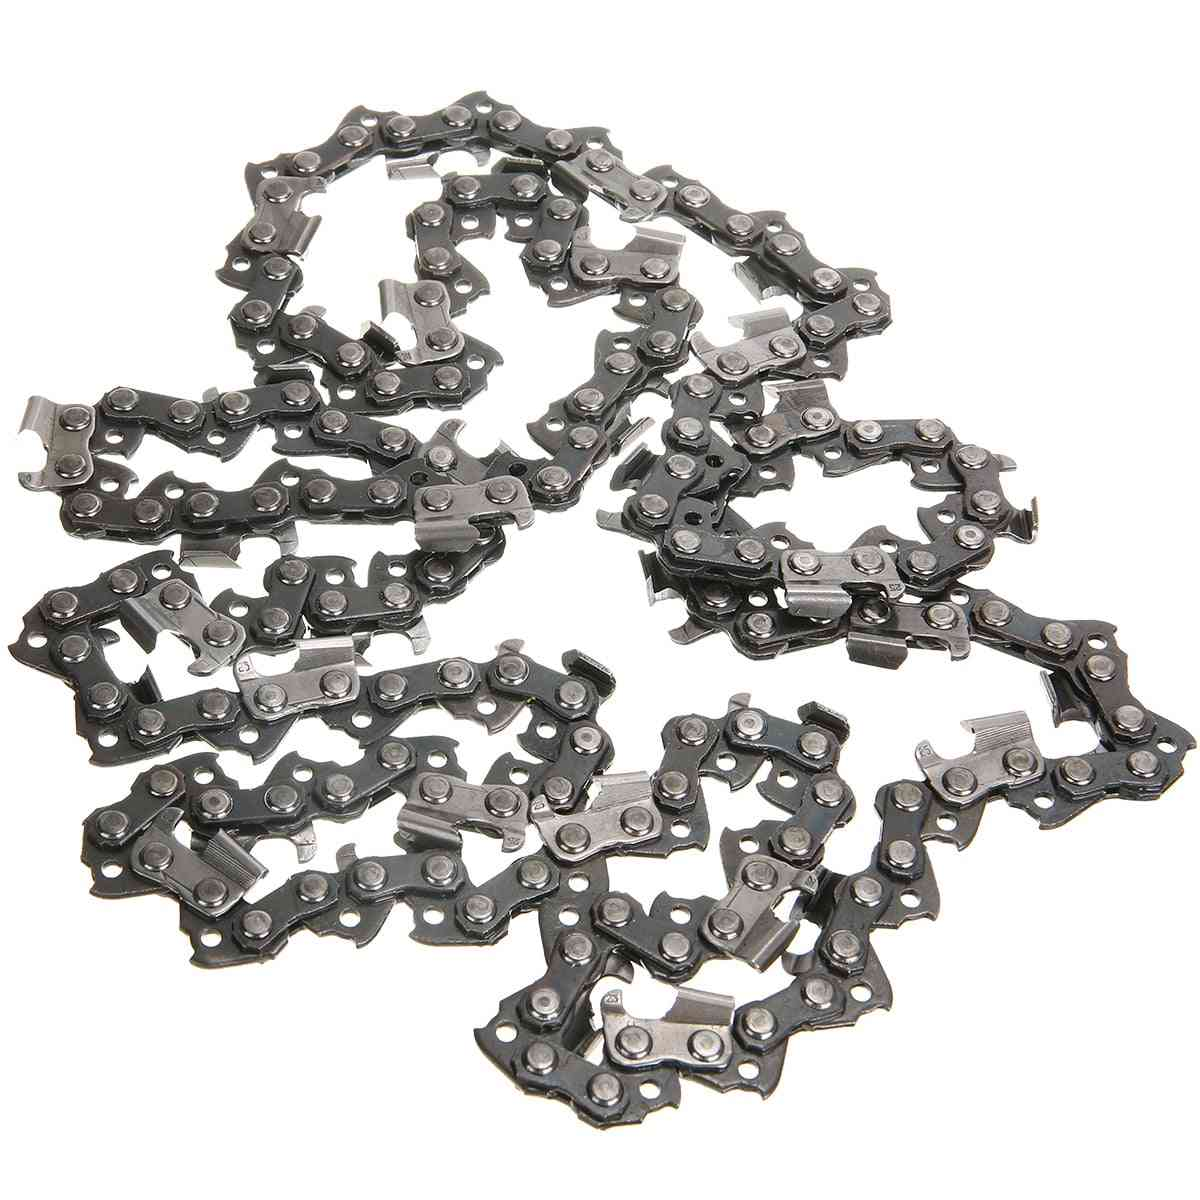 Woodworking Mill Gasoline Saw Chain, Blade Drive Link